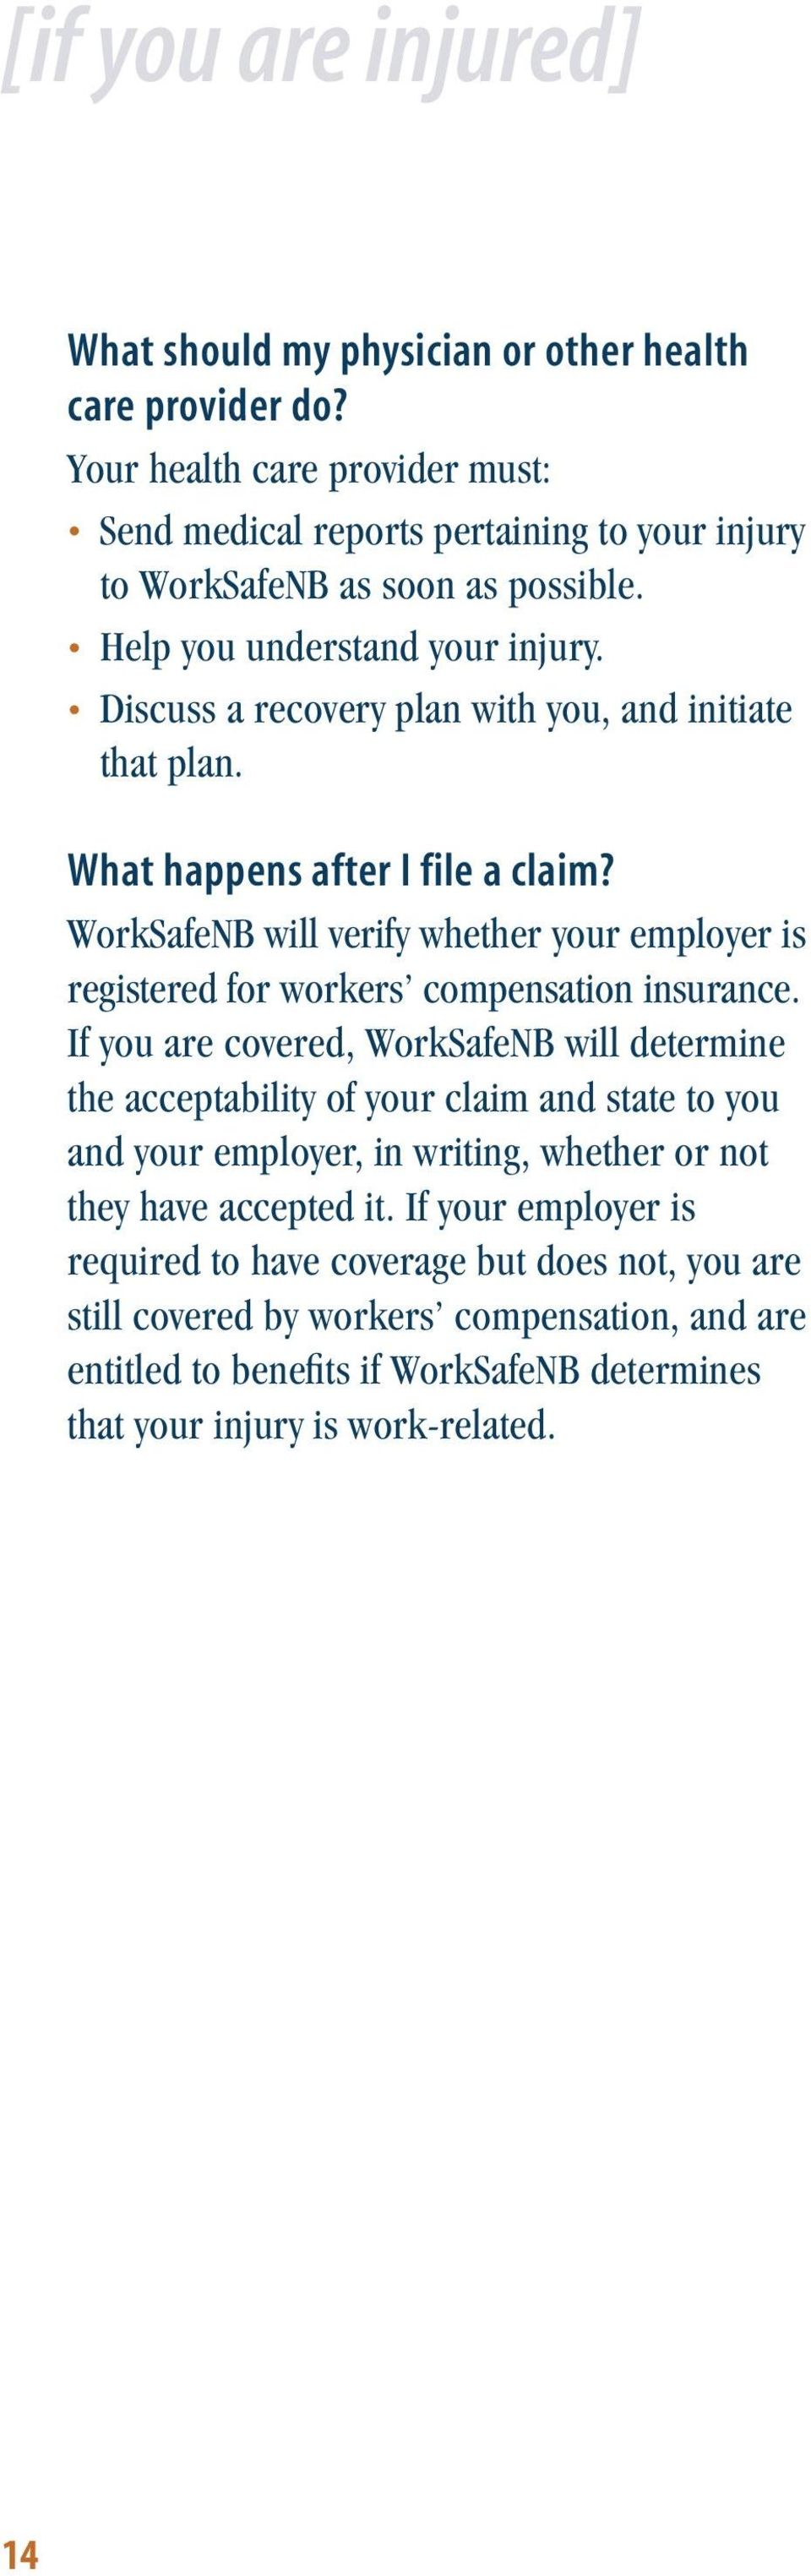 WorkSafeNB will verify whether your employer is registered for workers compensation insurance.